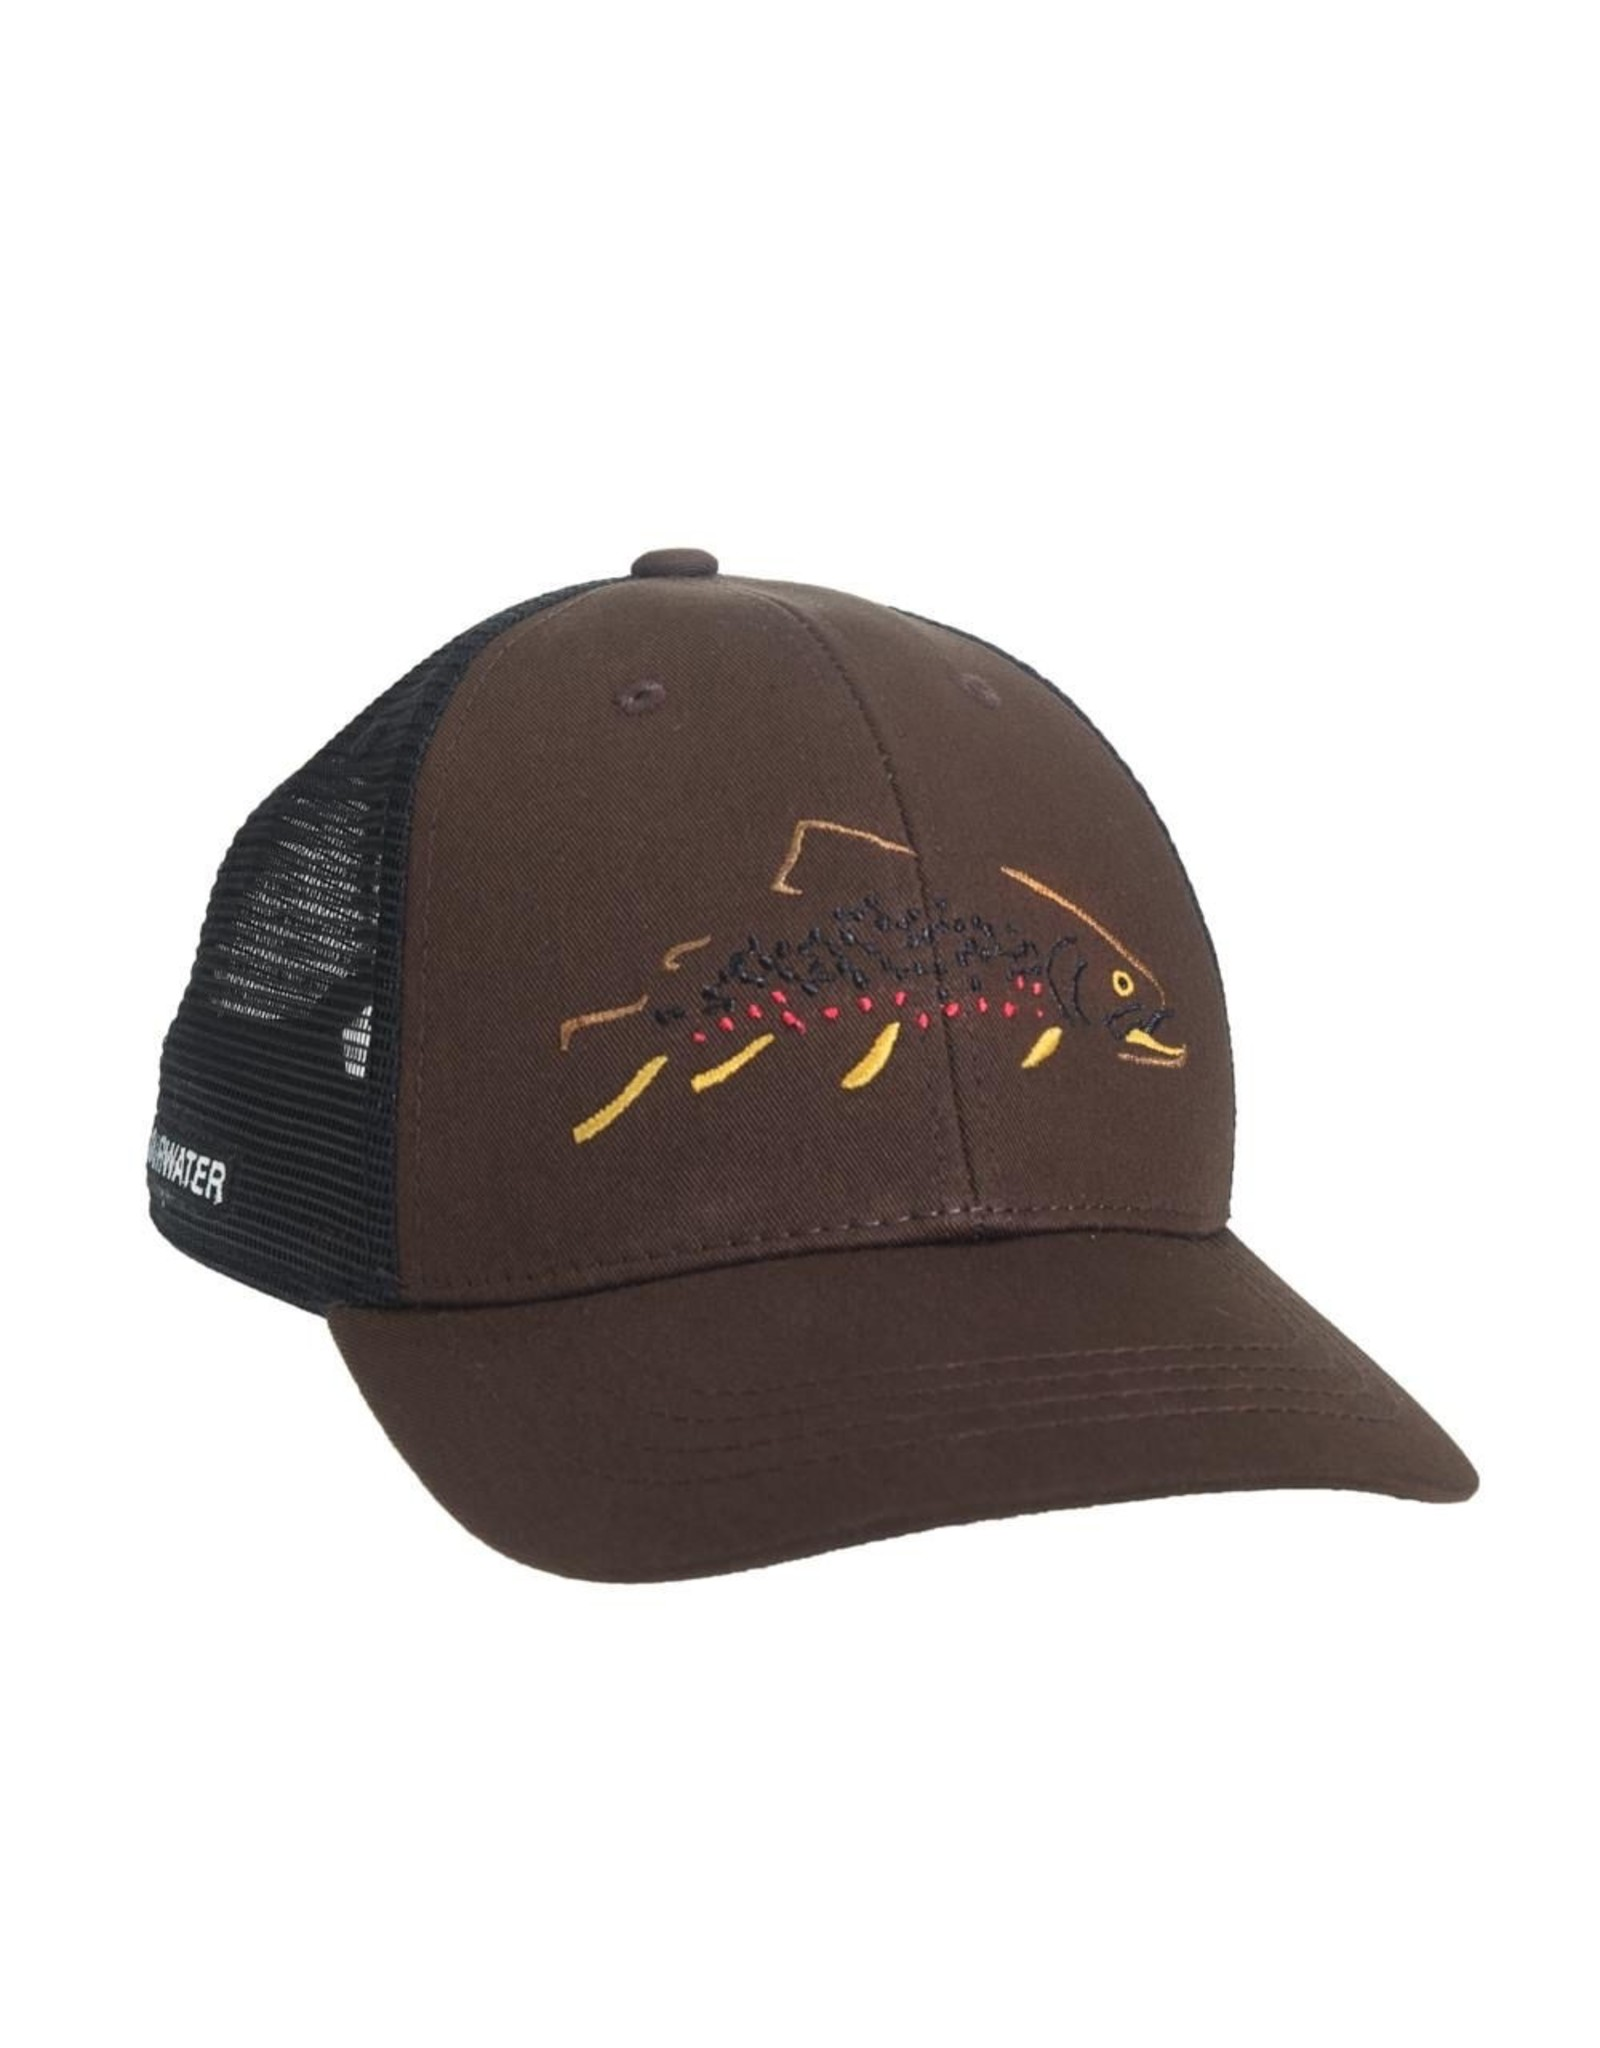 Rep Your Water Rep Your Water Minimalist Brown Standard Fit Hat